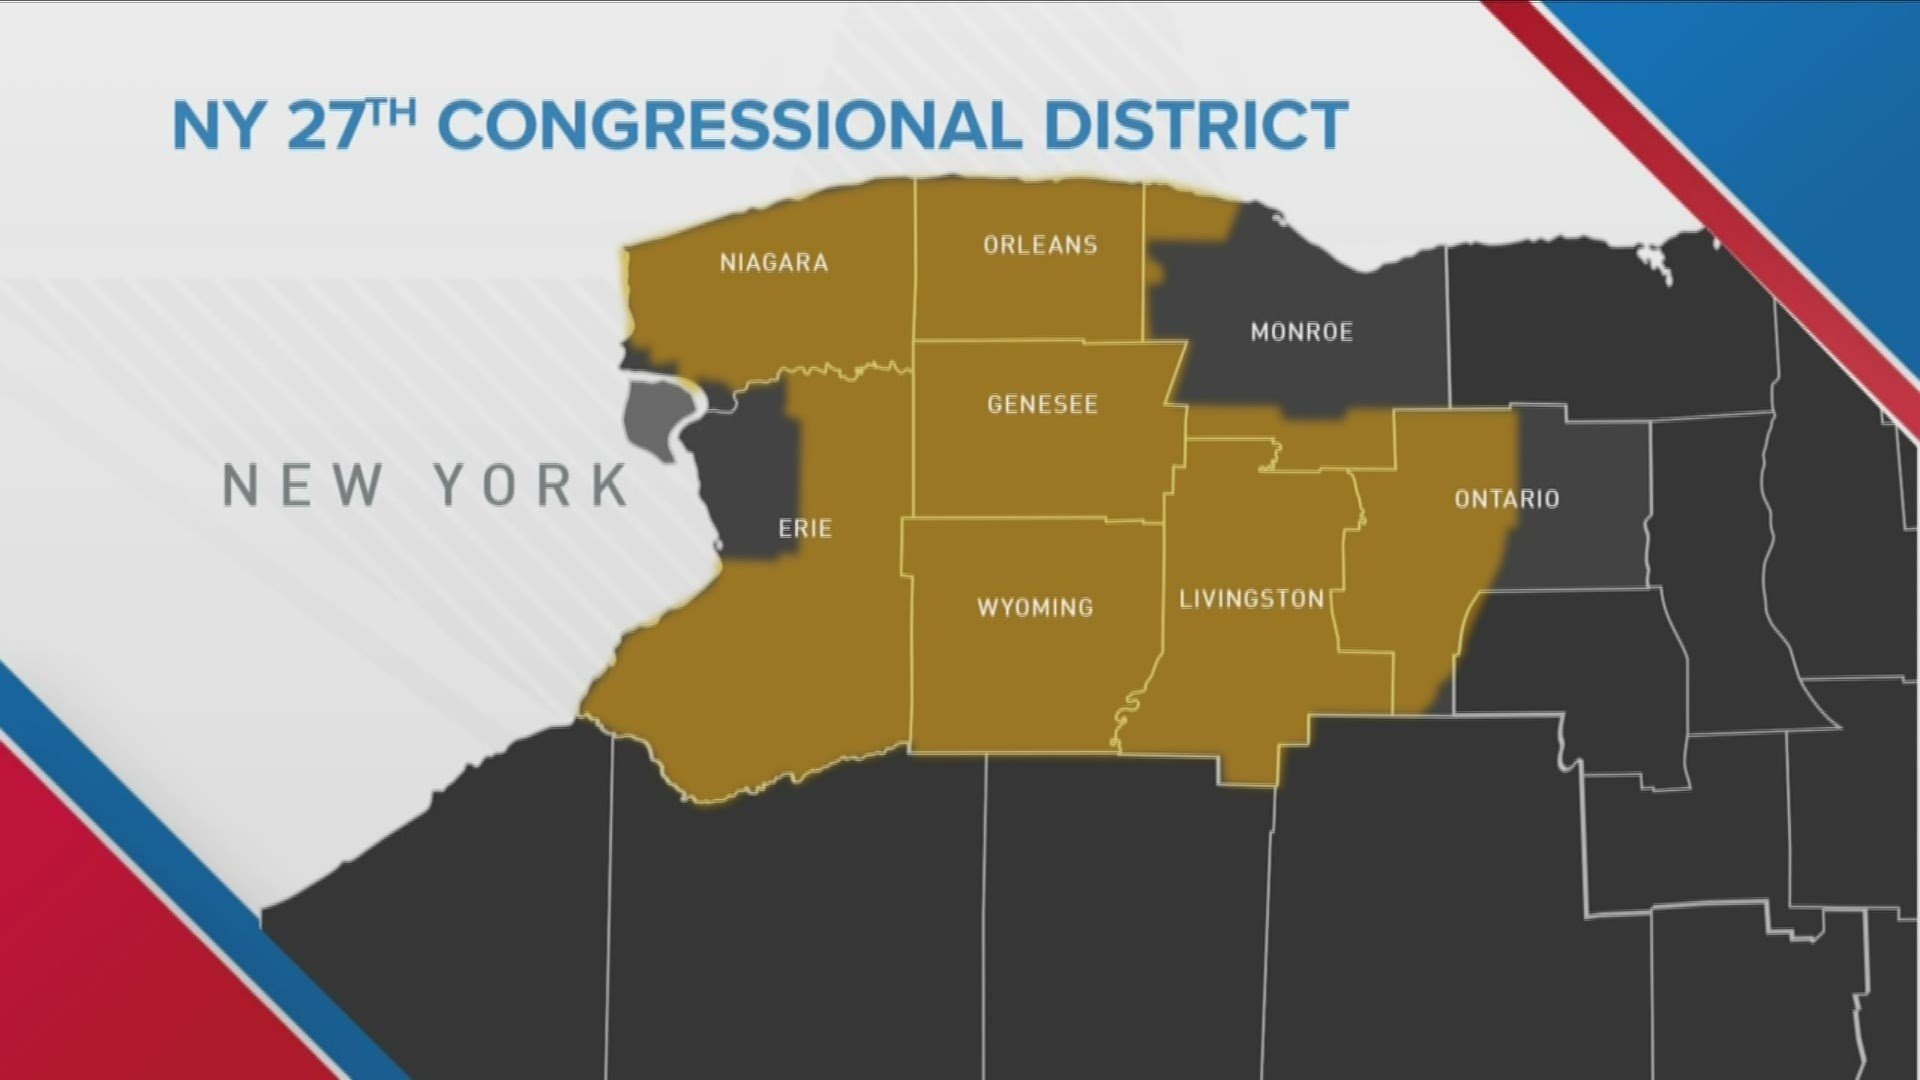 The NY 27th Congressional District Map